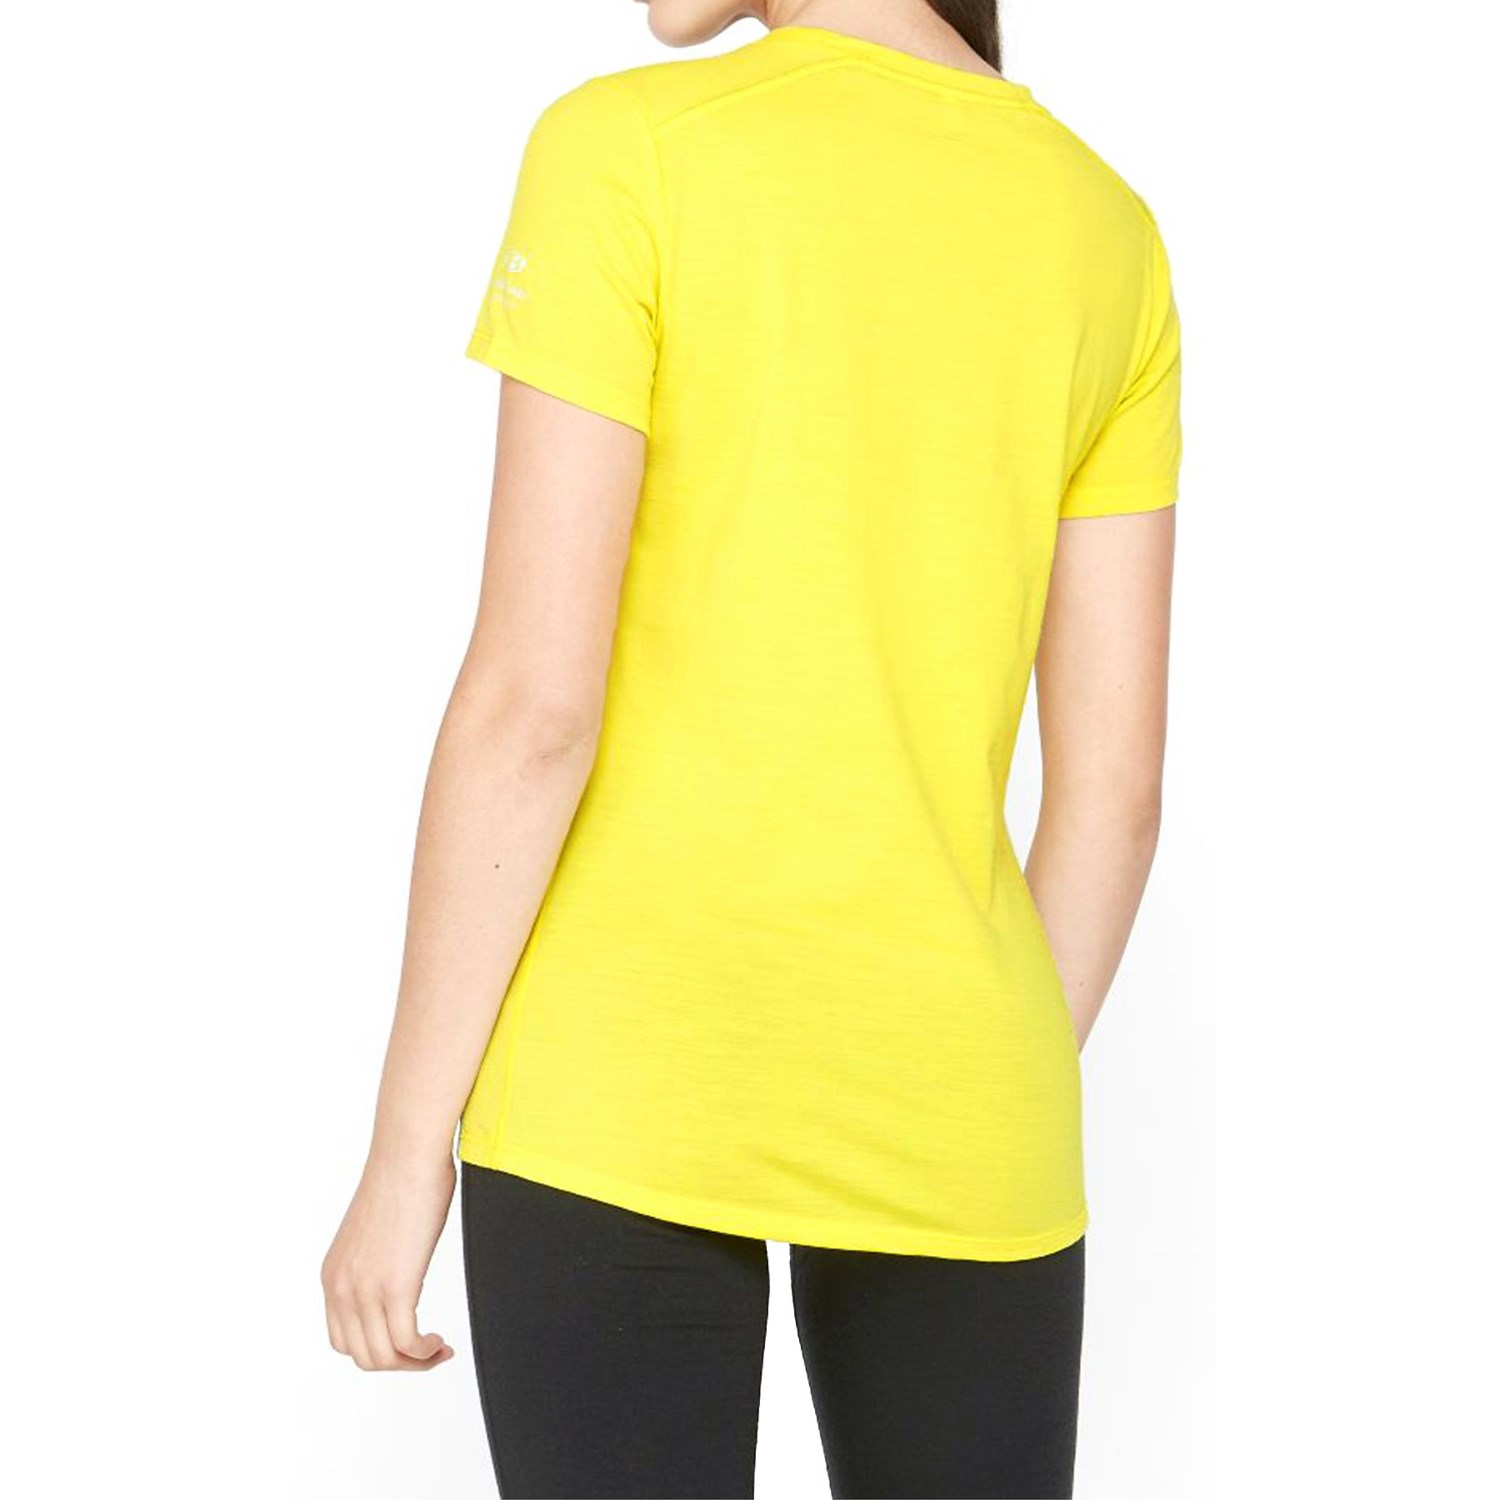 Icebreaker aero shirt for women save 42 for Merino wool shirts for travel